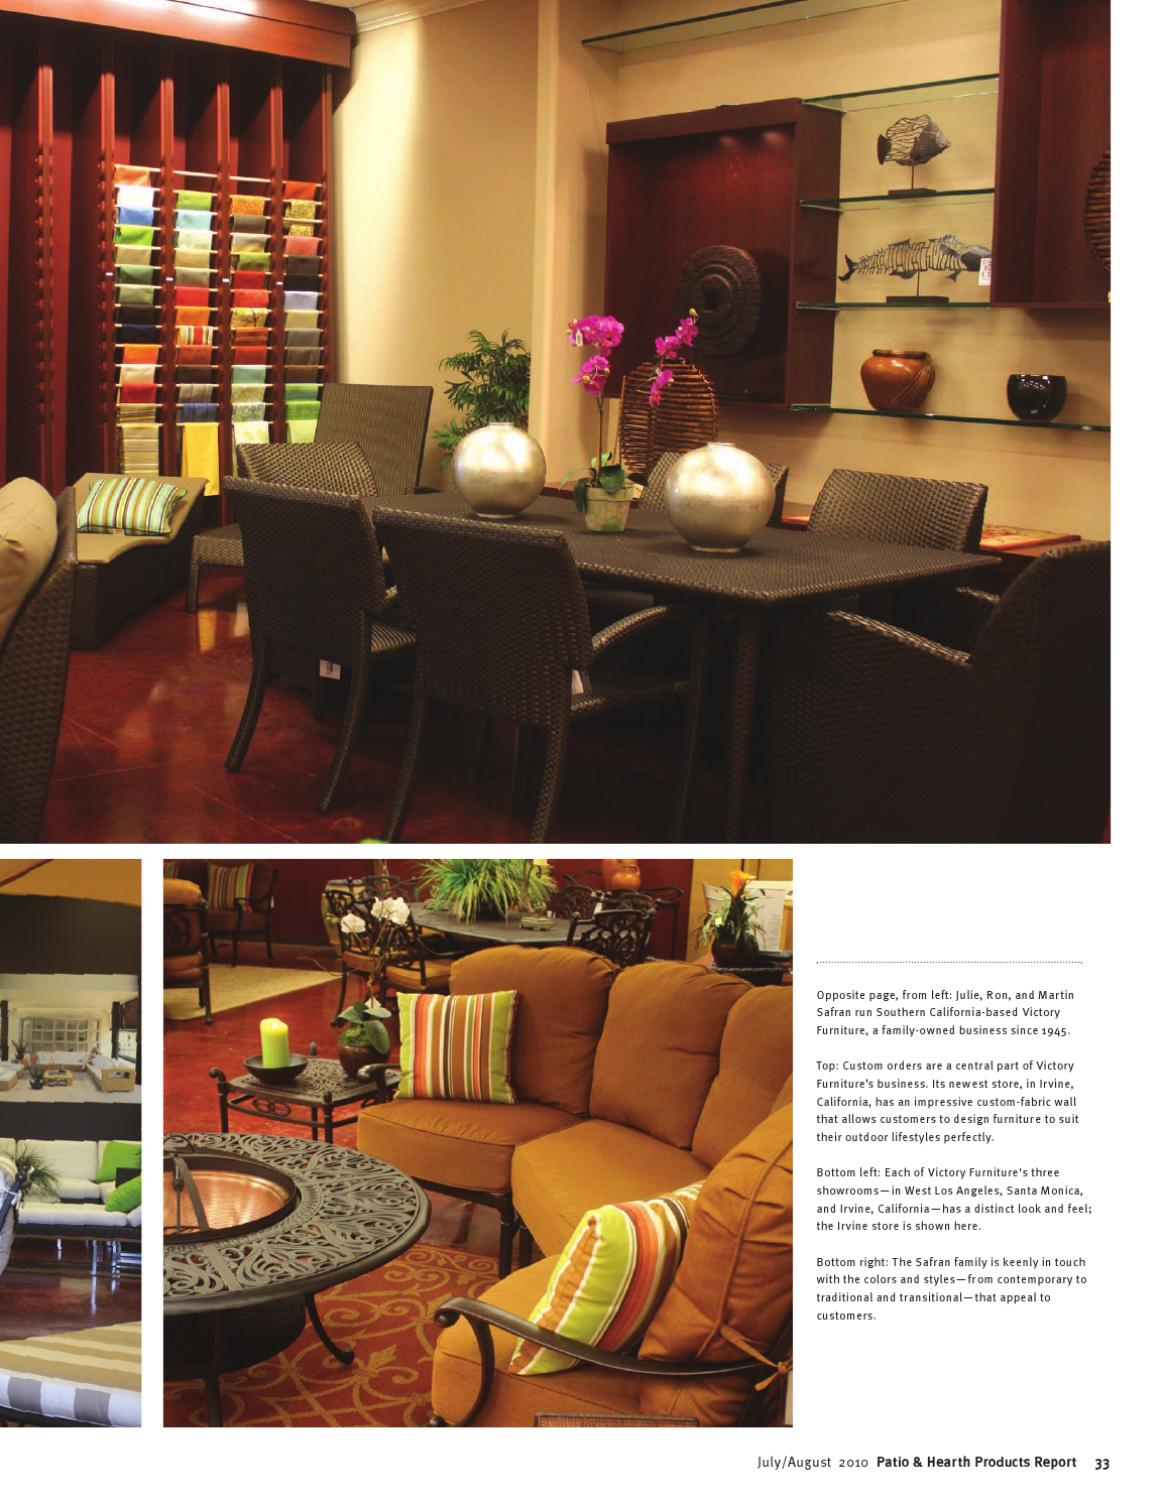 Patio Amp Hearth Products Report Jul Aug 2010 By Peninsula Media Issuu